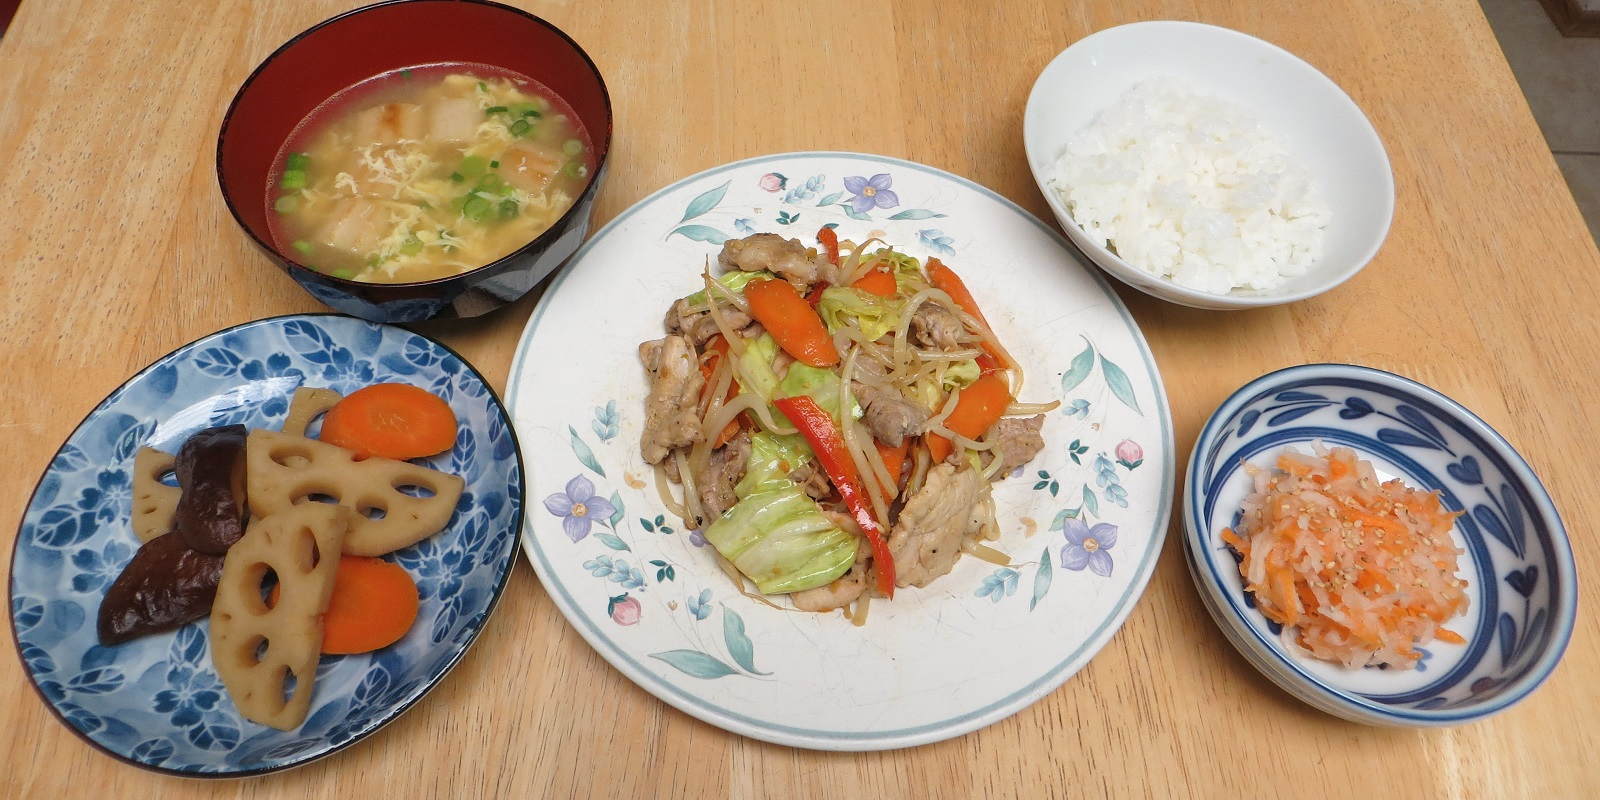 500 calories set meal sliced meat yasai itame stir fry vegetables